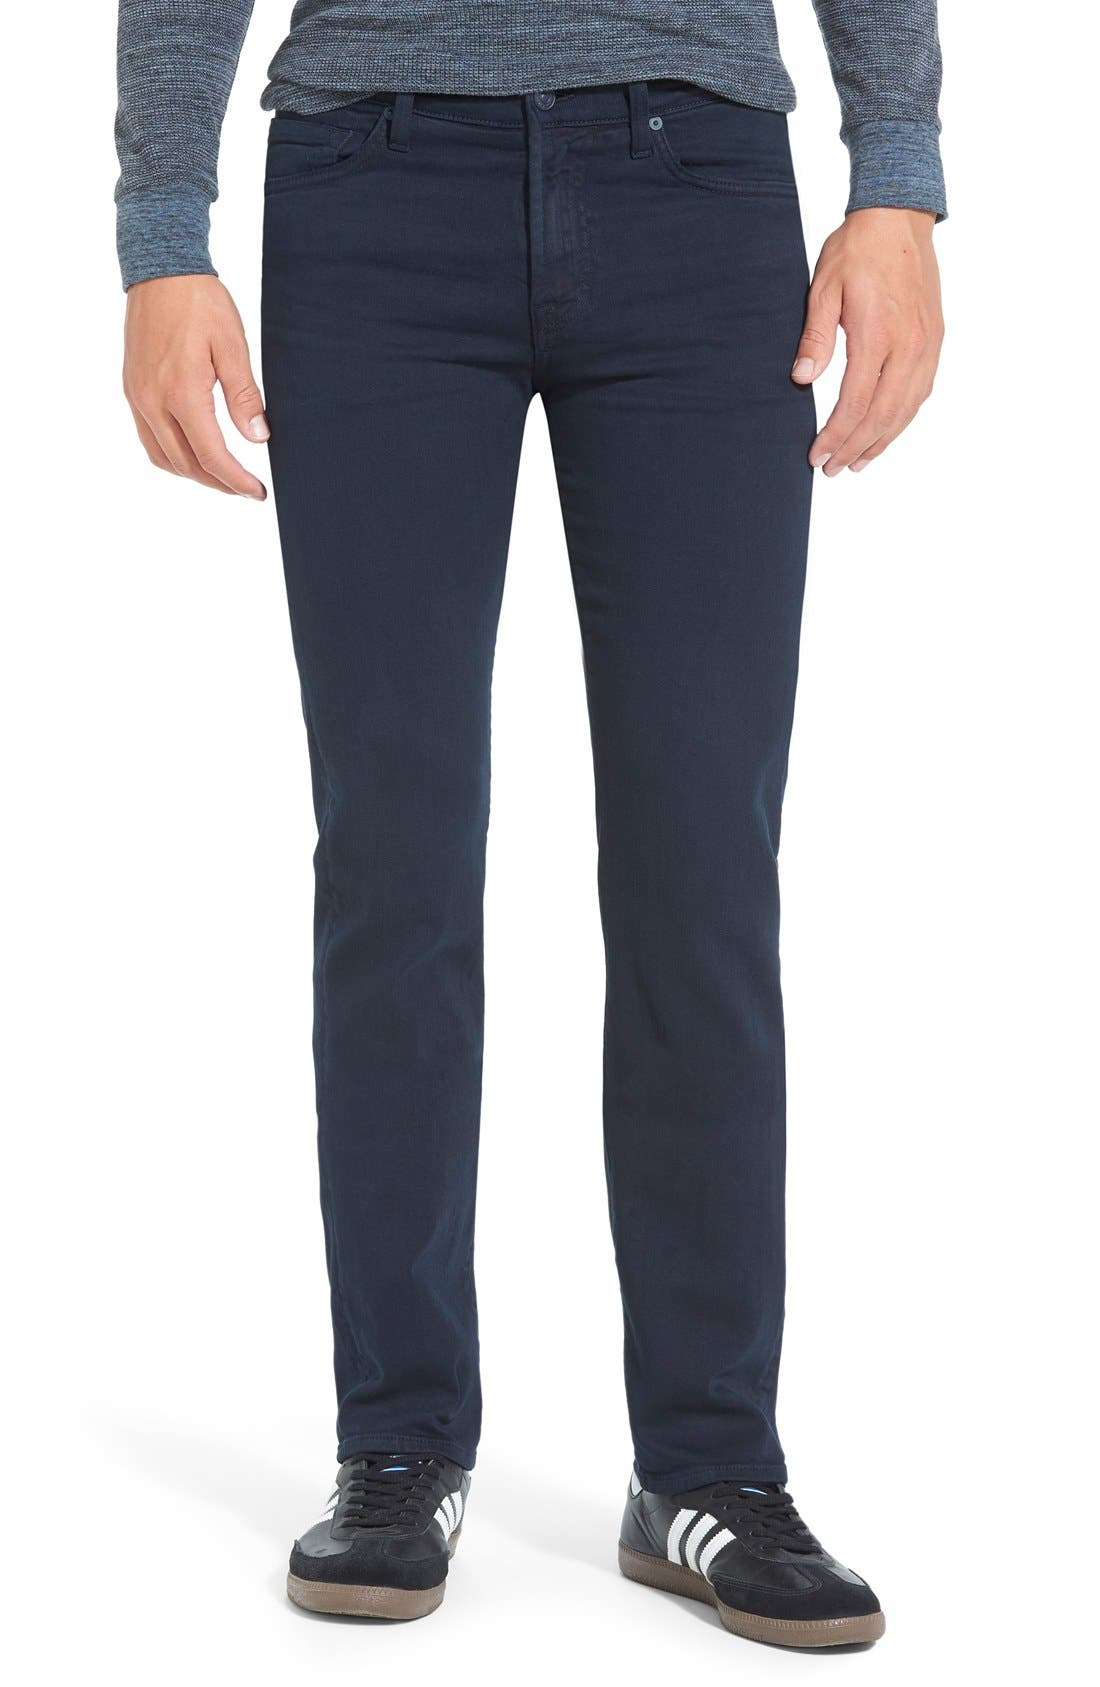 Main Image - 7 For All Mankind® 'Slimmy - Luxe Performance' Slim Fit Jeans (Night Navy)